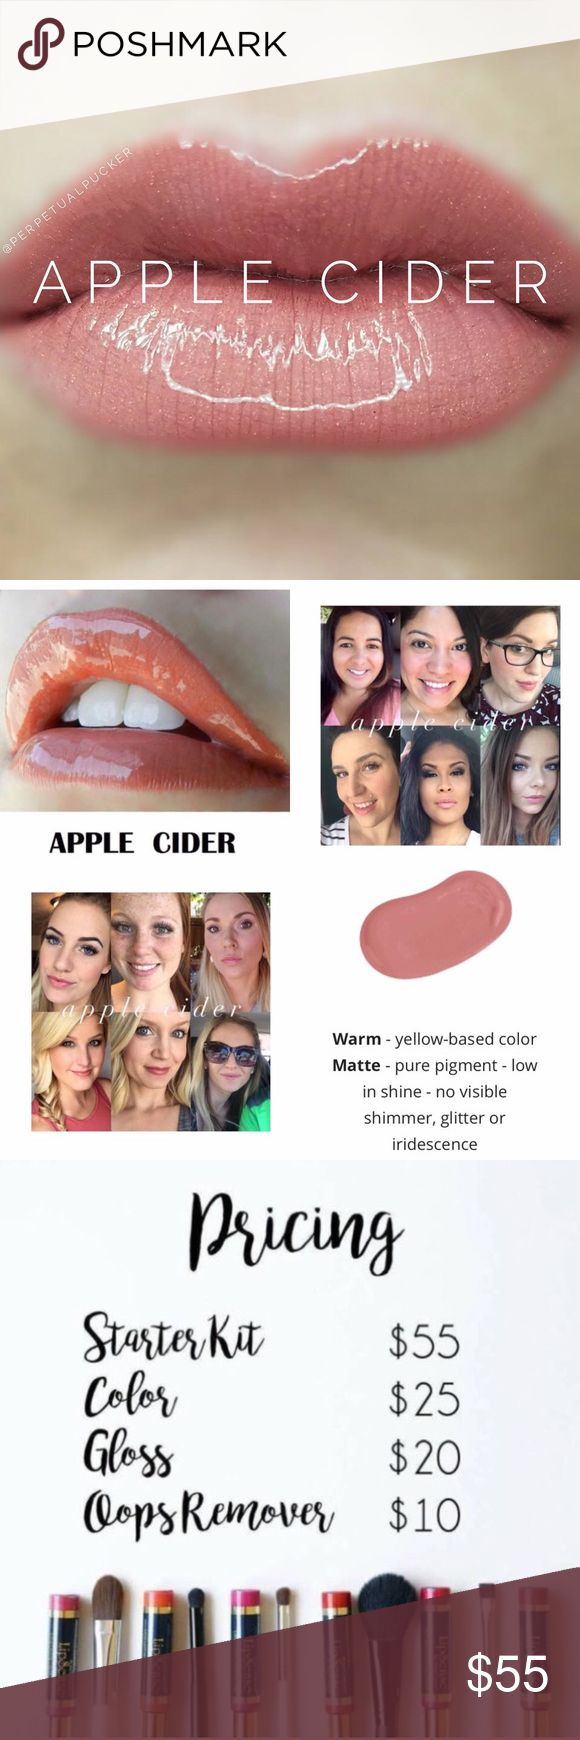 🎉 Lipsense Apple Cider 💋 Authentic🌟New & Sealed 💋 Wayyy better than lipstick 💄 Lipsense🌟 Apple Cider color ONLY! 🍎🥂  If already have a set this is perfect for you! Great💰 If new to Lipsense I definitely recommend getting a starter kit;  An amazing Lipsense starter kit includes color, gloss and remover! Ex: Apple Cider+Glossy+Oops  I have Gloss,Oops & starter kits in separate listing!💋 Lipsense Makeup Lipstick